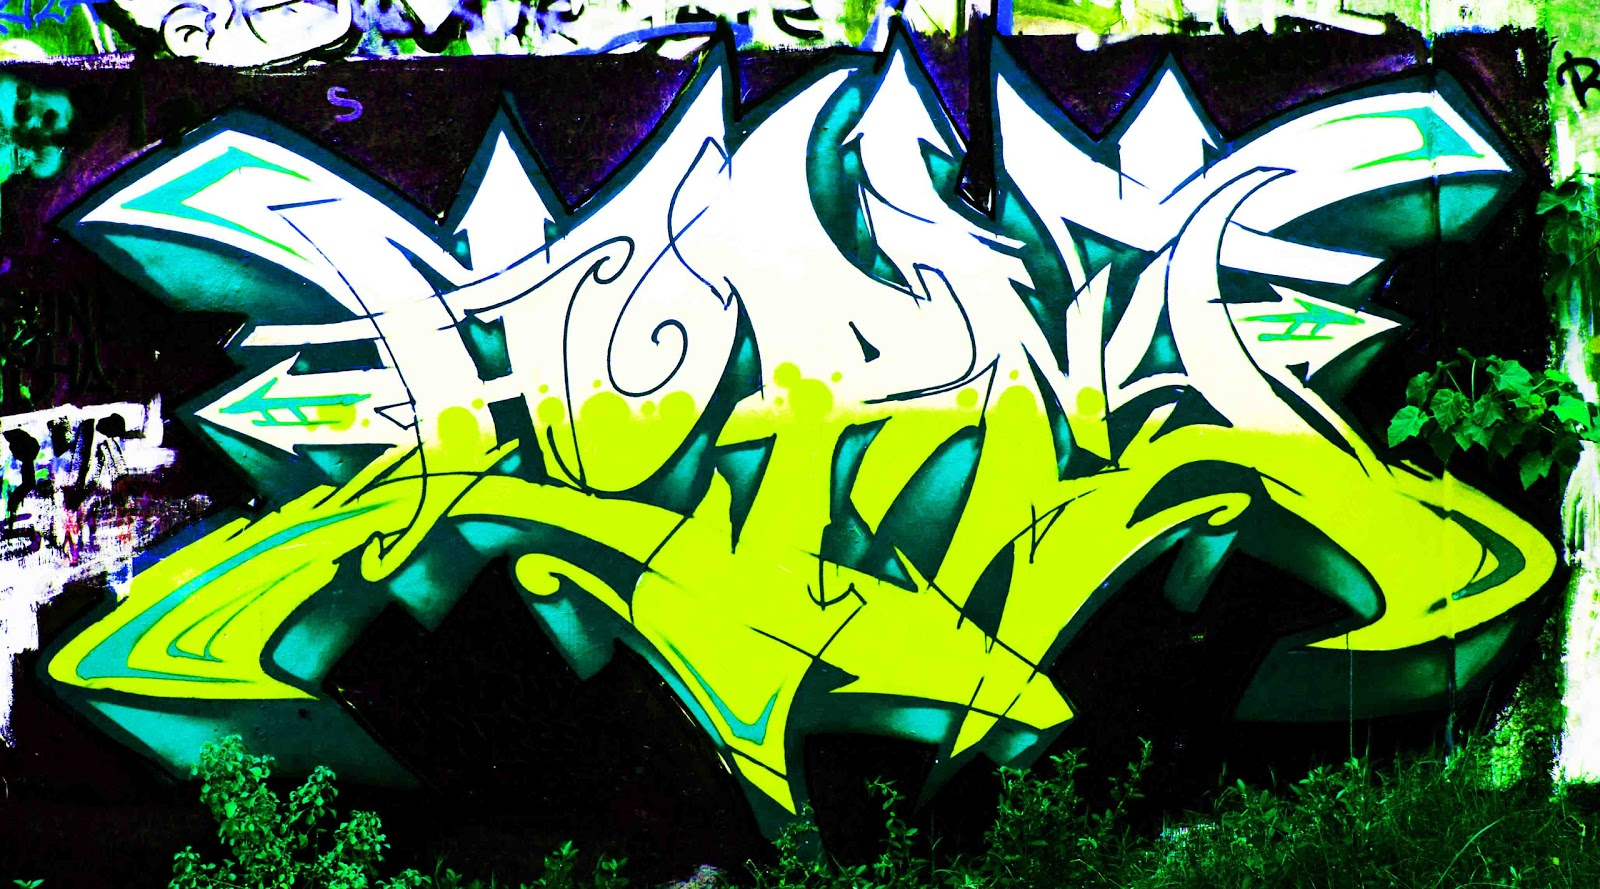 Graffiti Art - Bests Graffiti